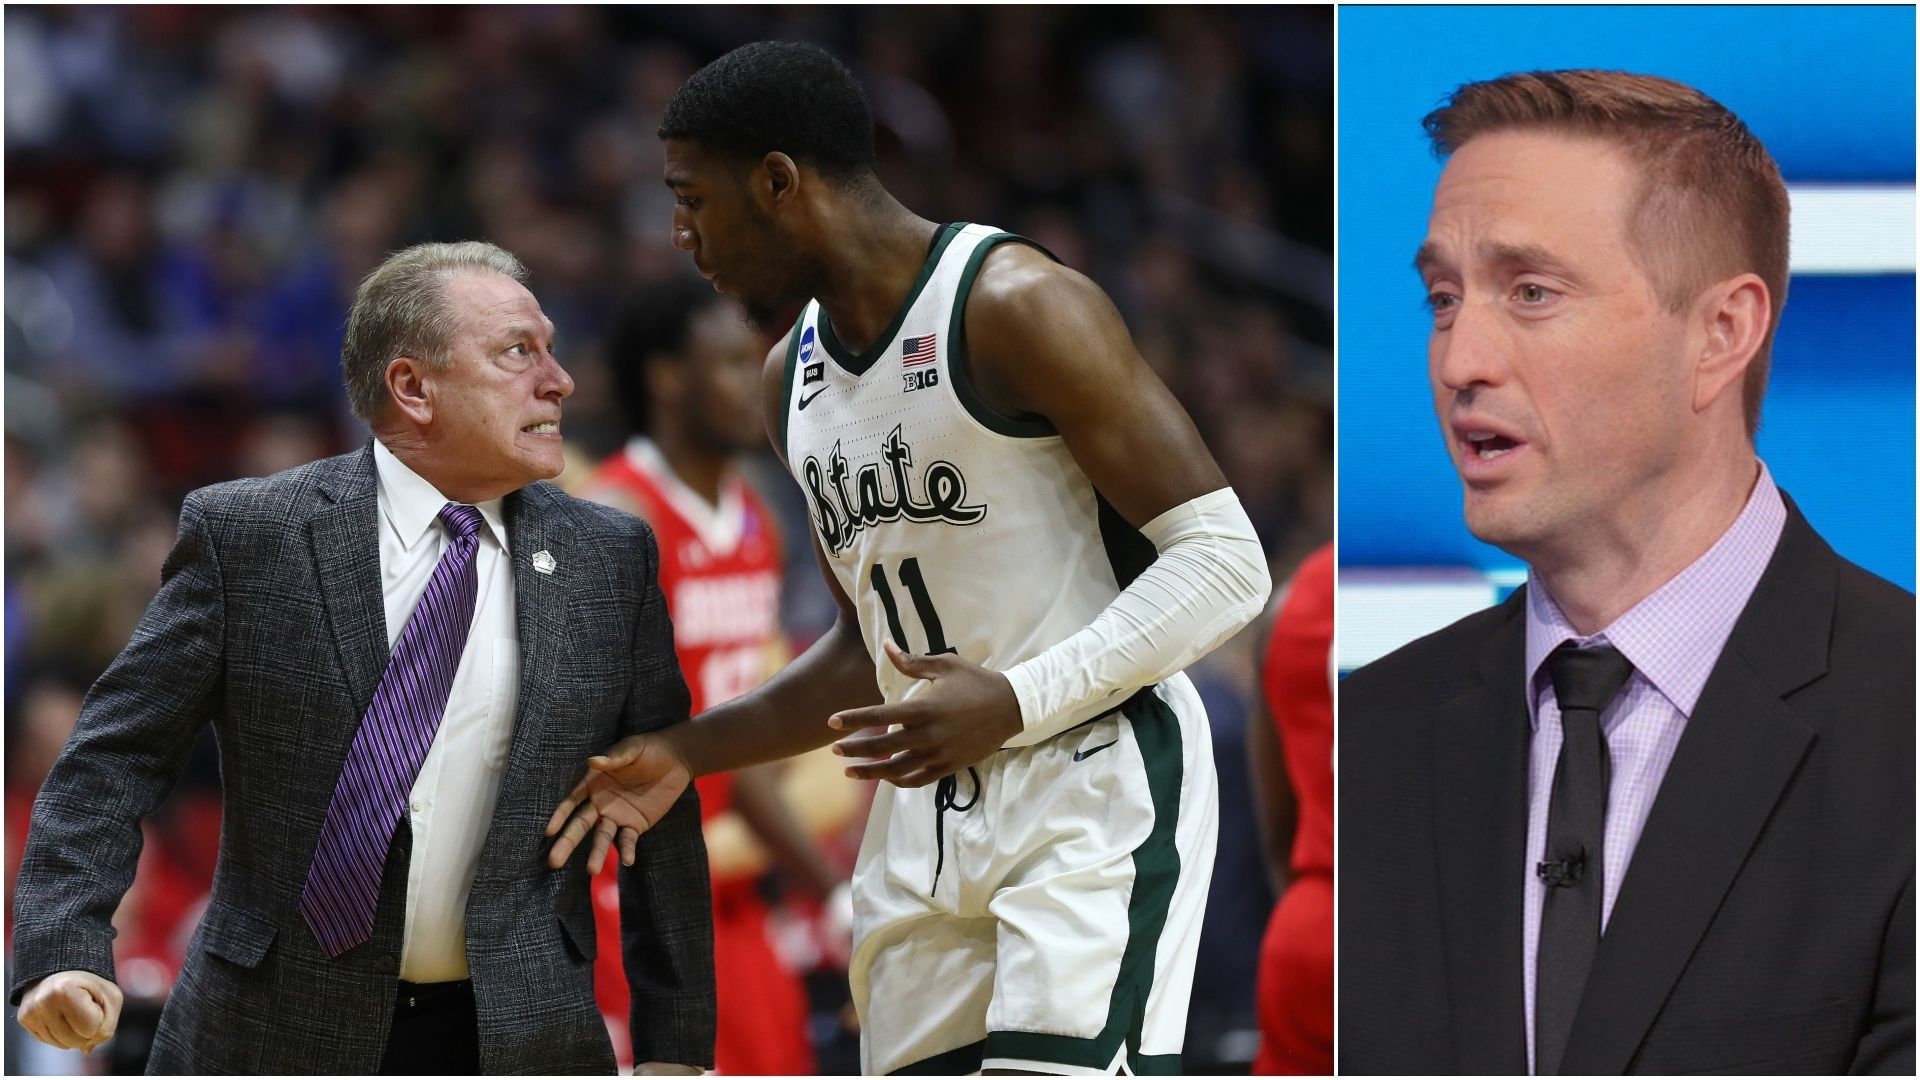 MSU's Izzo doesn't apologize for yelling at Henry